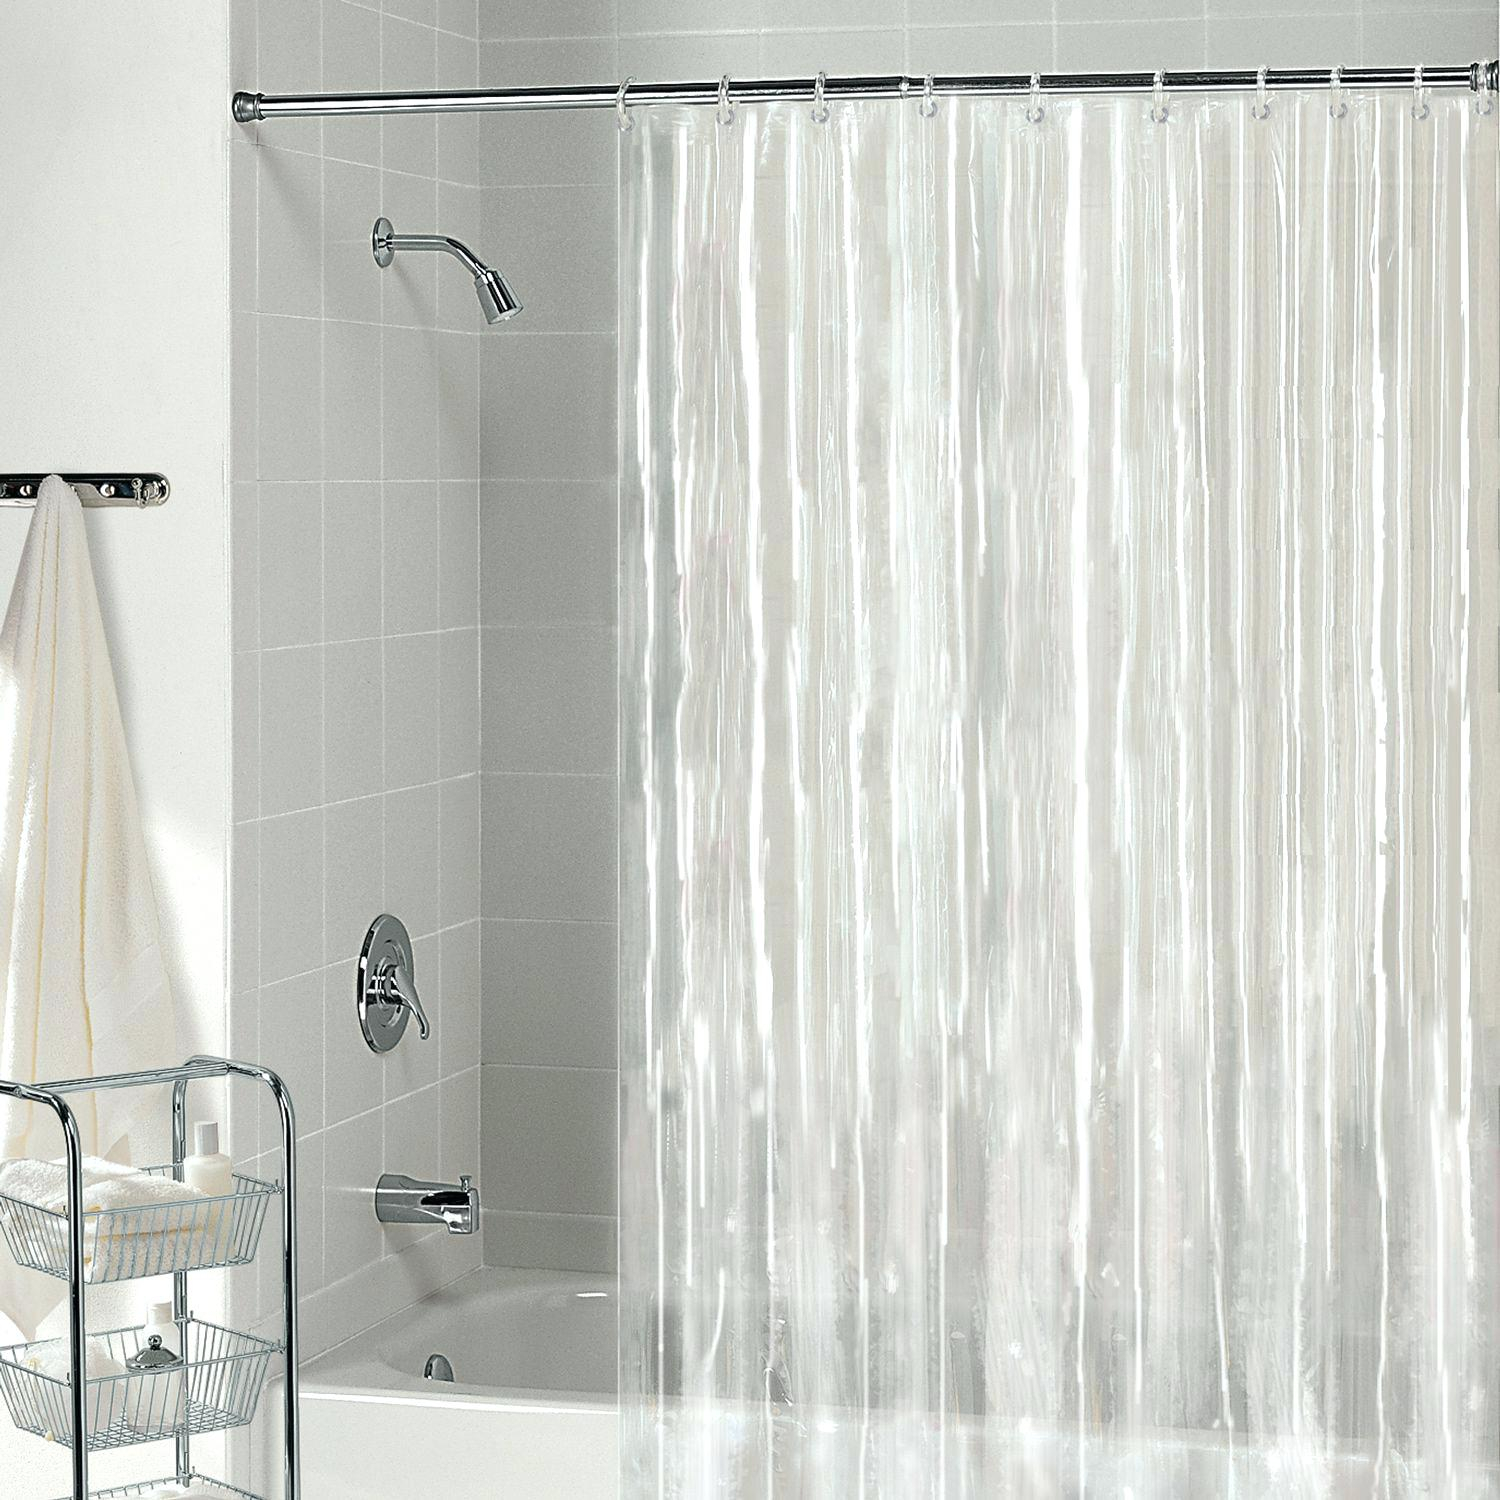 Tall Shower Curtain Splash Guard • Shower Curtains Ideas